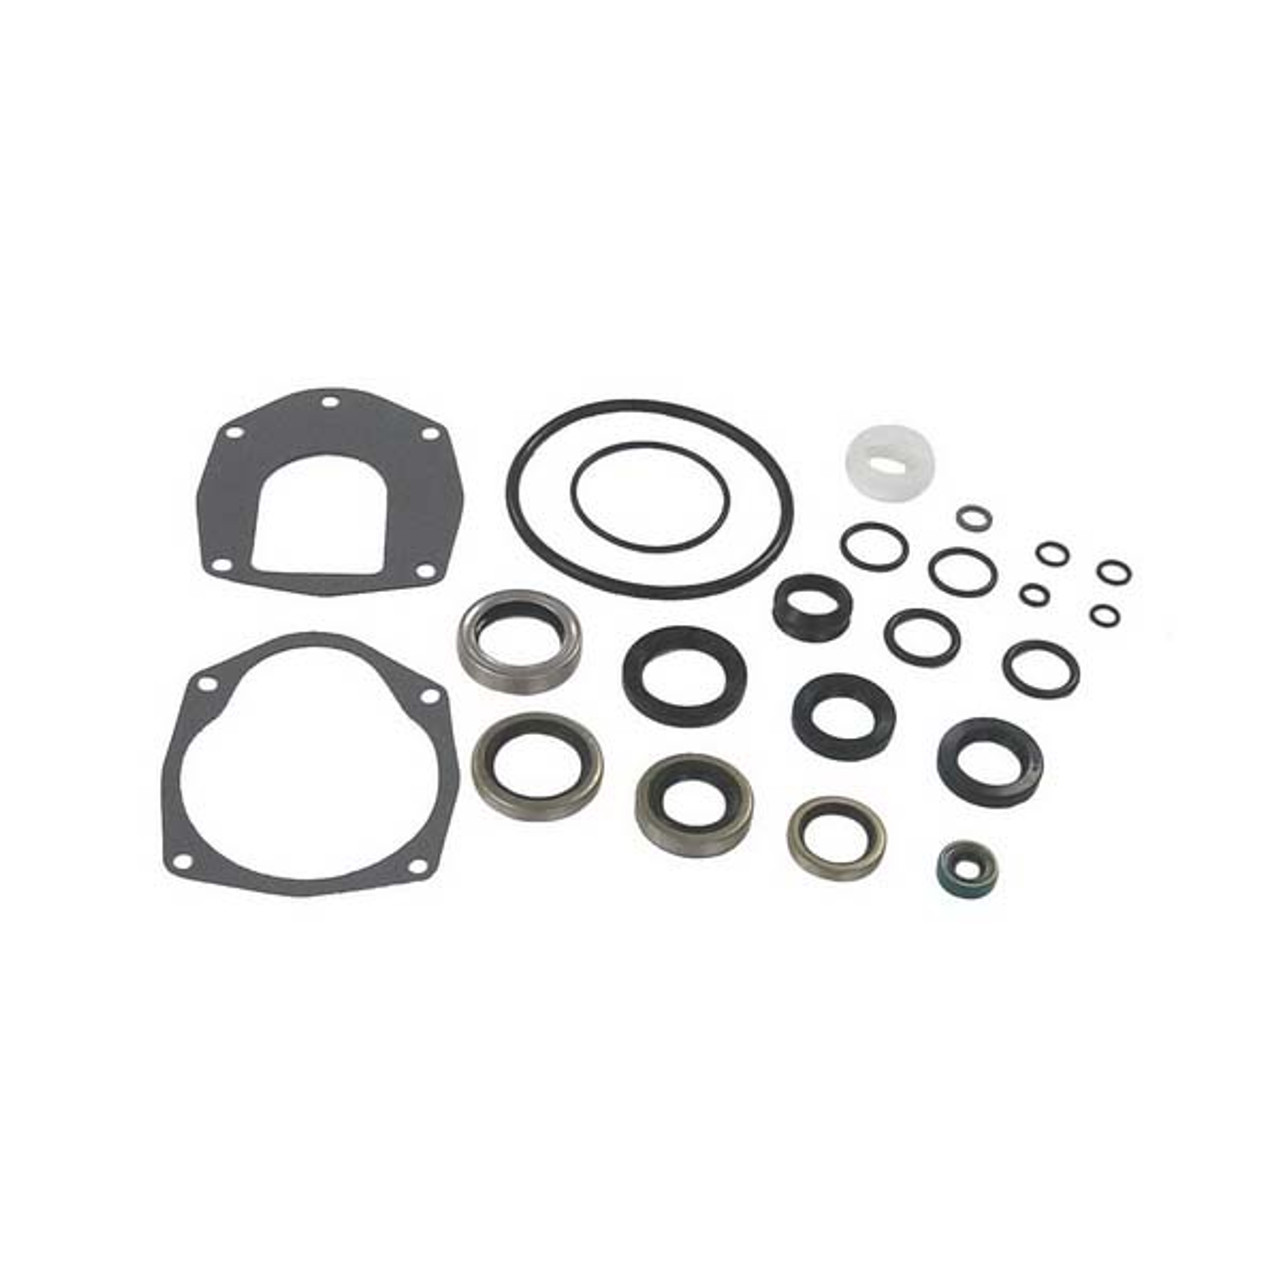 Sierra 18-2646-1 Lower Unit Seal Kit Replaces 26-816575A3